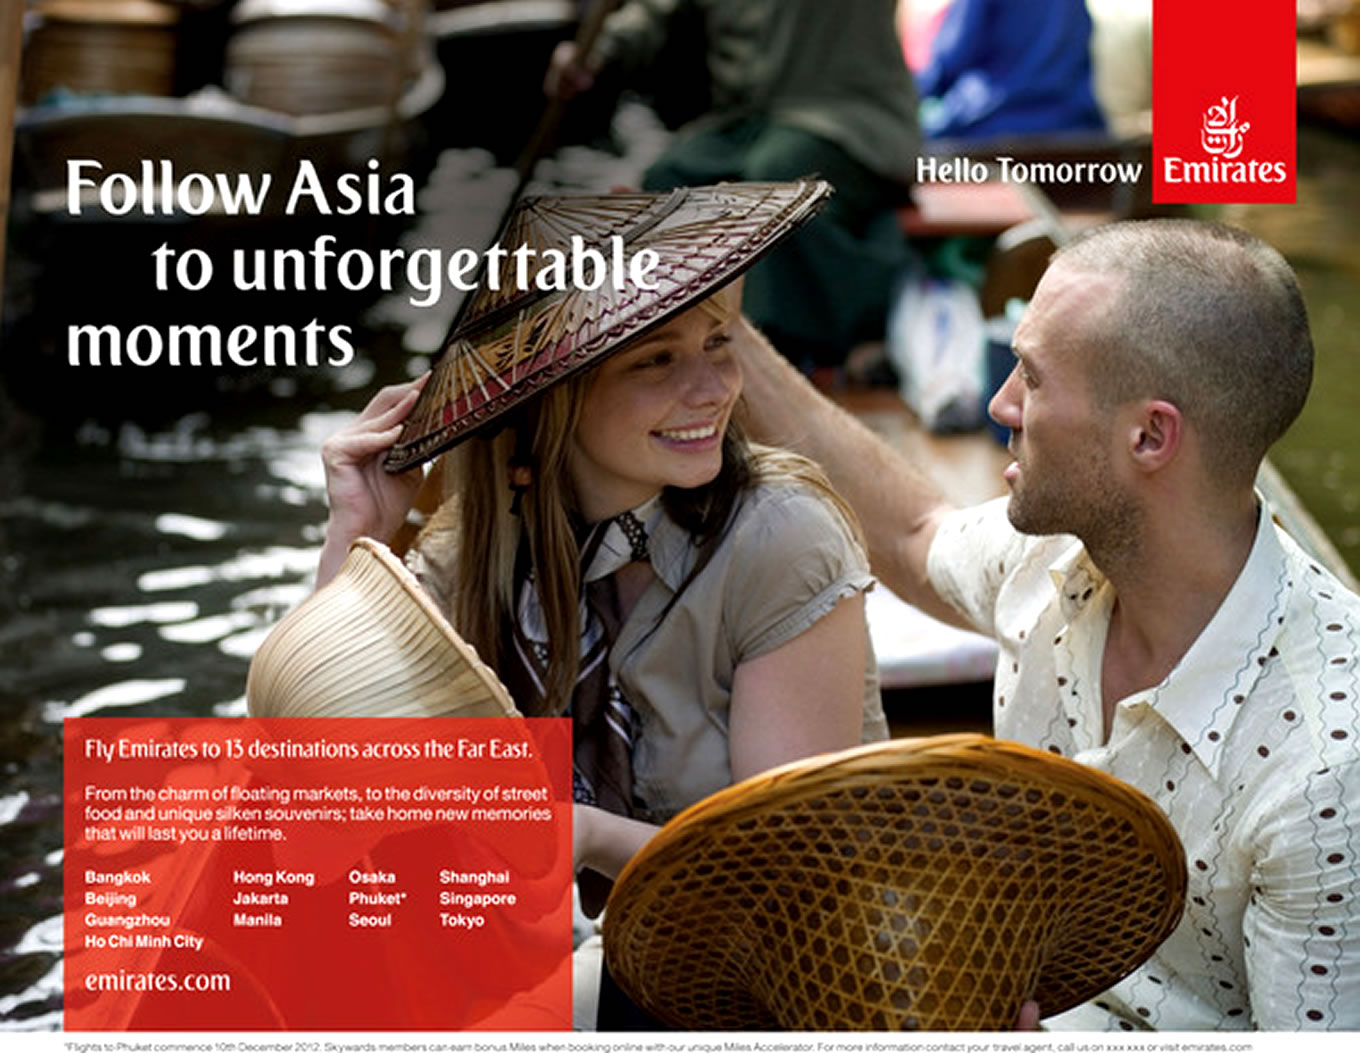 Destination Asia, Hello Tomorrow Marketing Campaign by Emirates Airlines